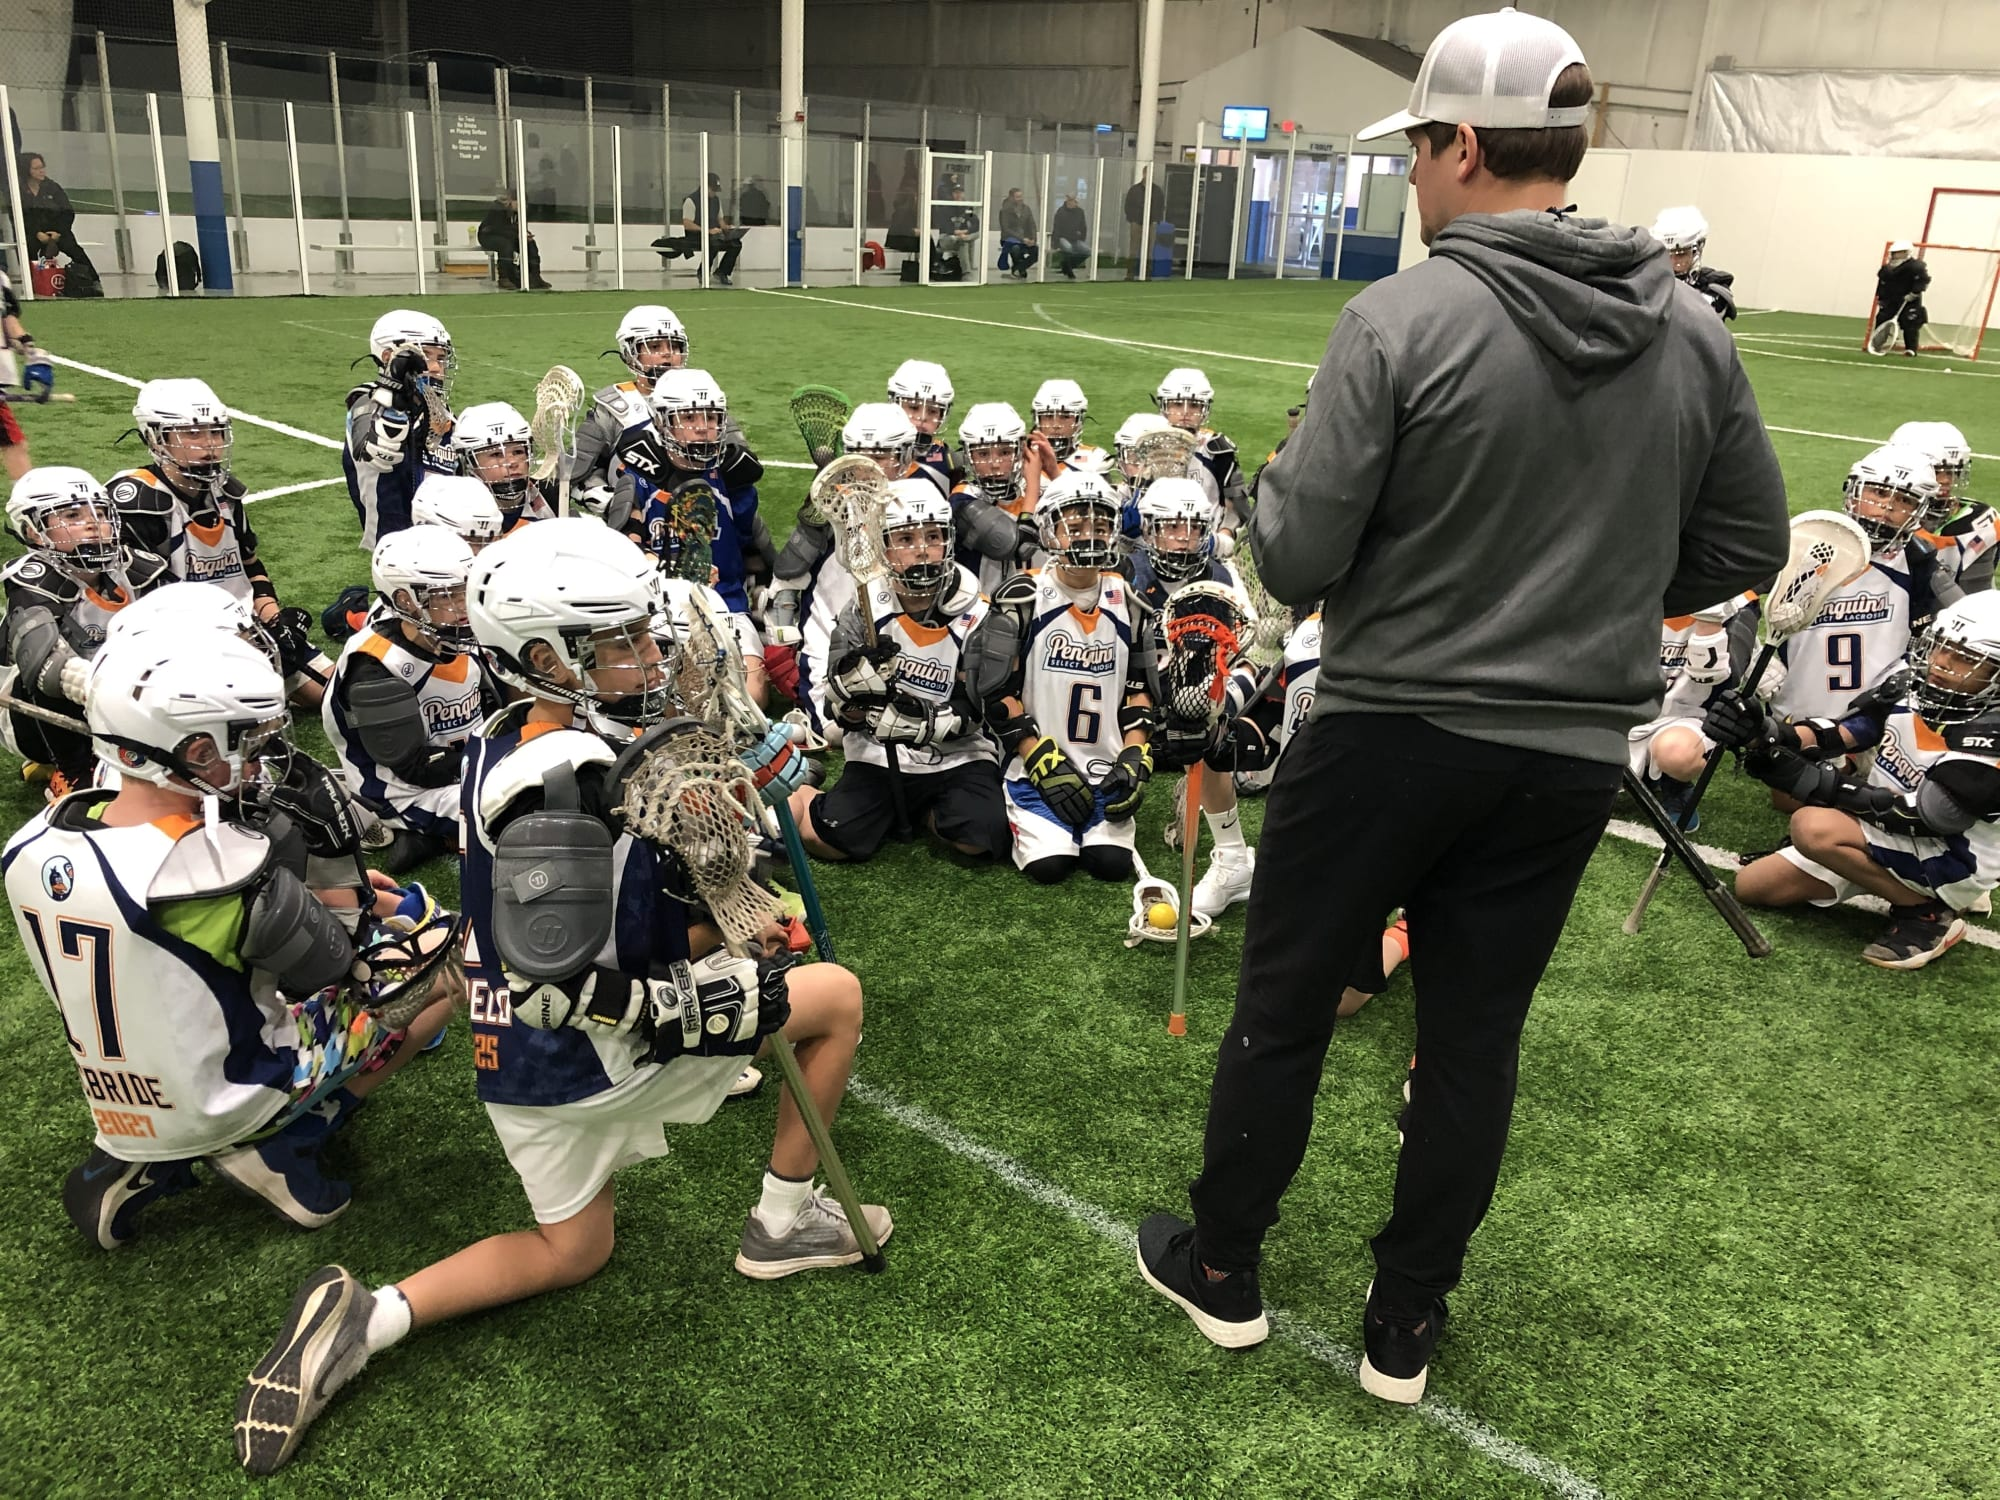 Bring Box Lacrosse to Town - How to Start a Team